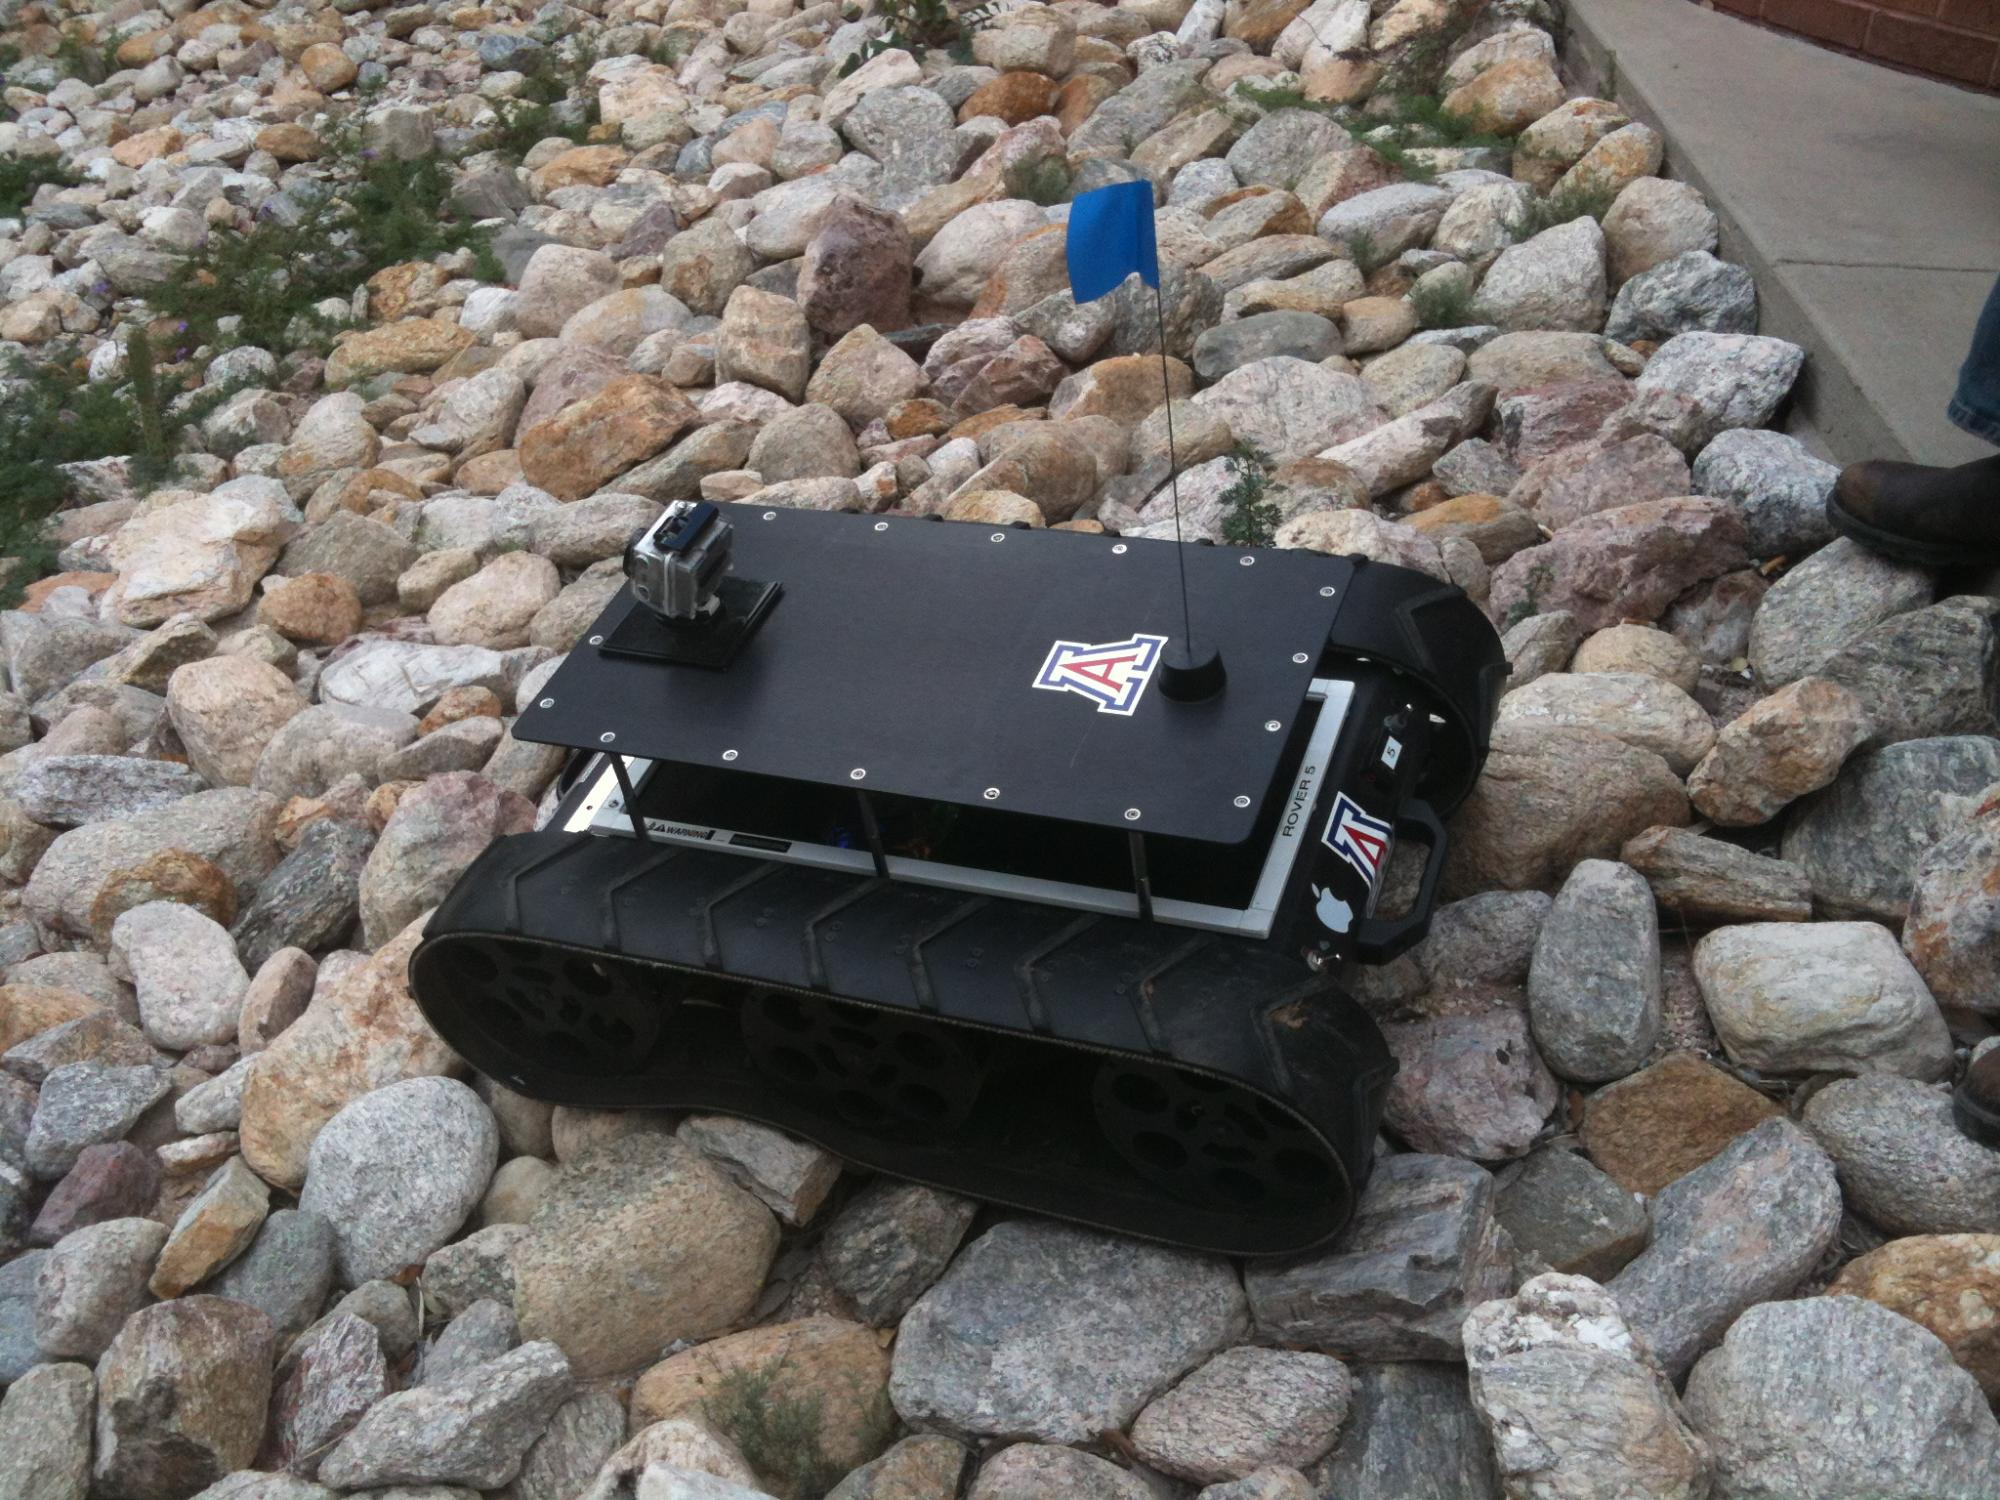 With on-board cameras and a laser range finder, this prototype of an autonomous rover is capable of avoiding obstacles and homing in on target structures.